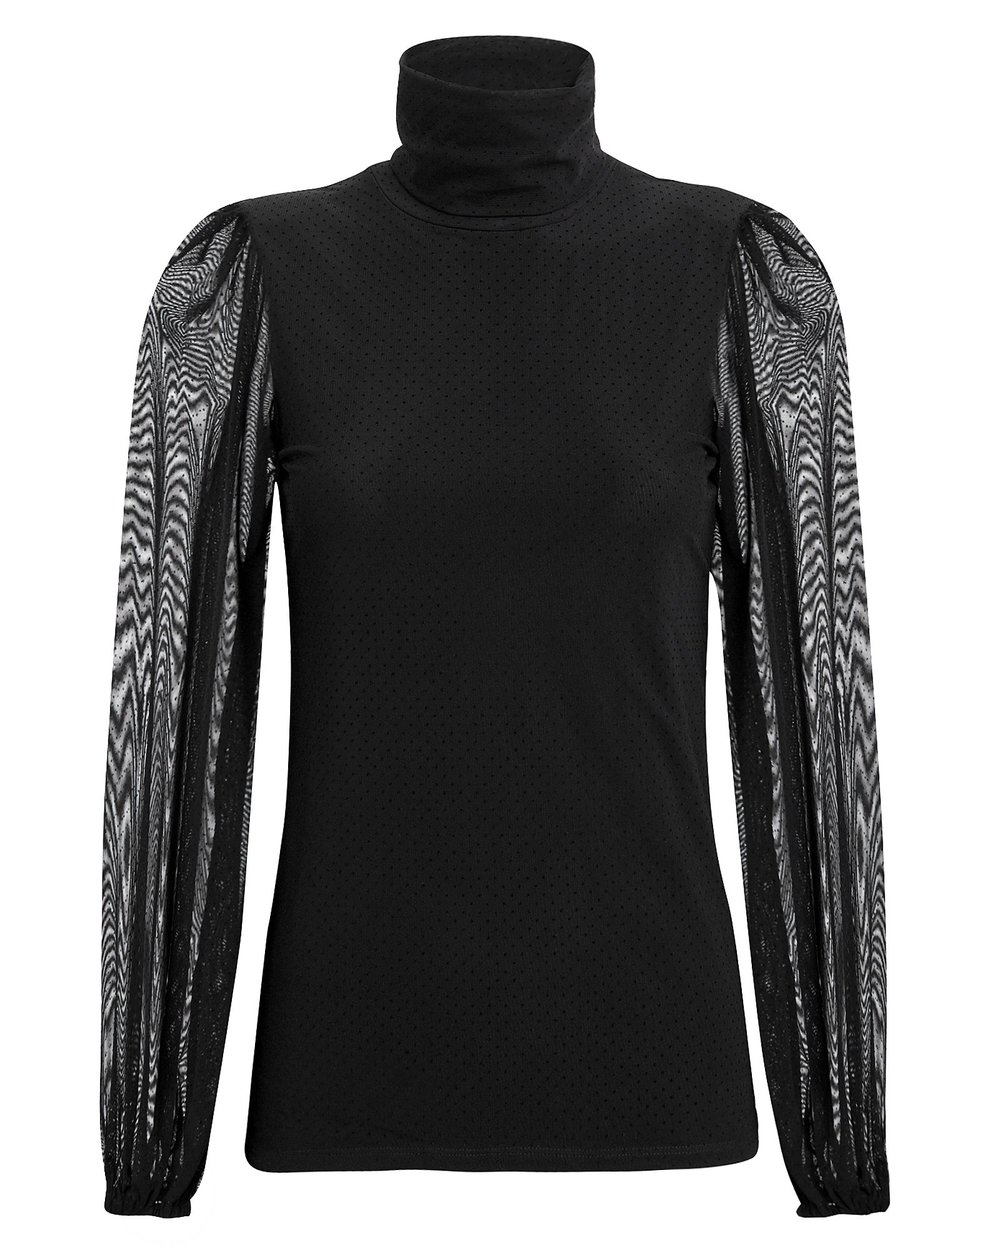 Ganni dot mesh turtleneck -